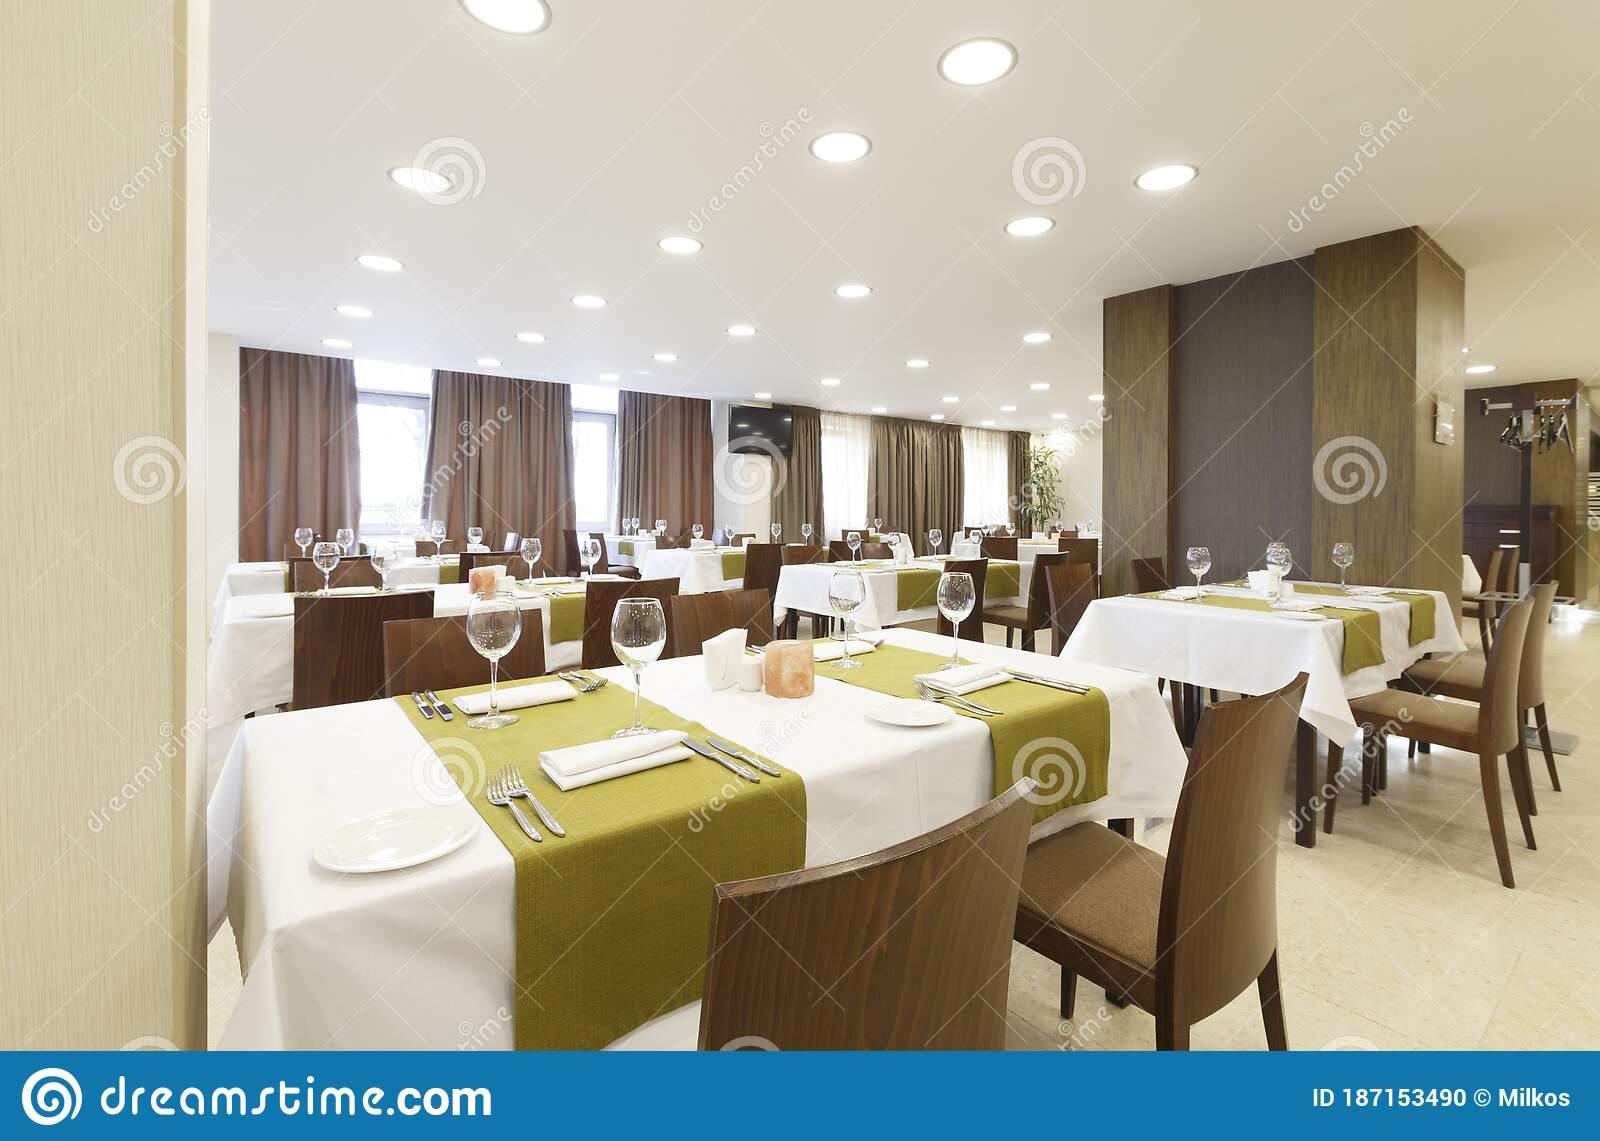 Restaurant In Hotel Modern Design And Minimalism Stock Photo Image Of Banquet Design 187153490